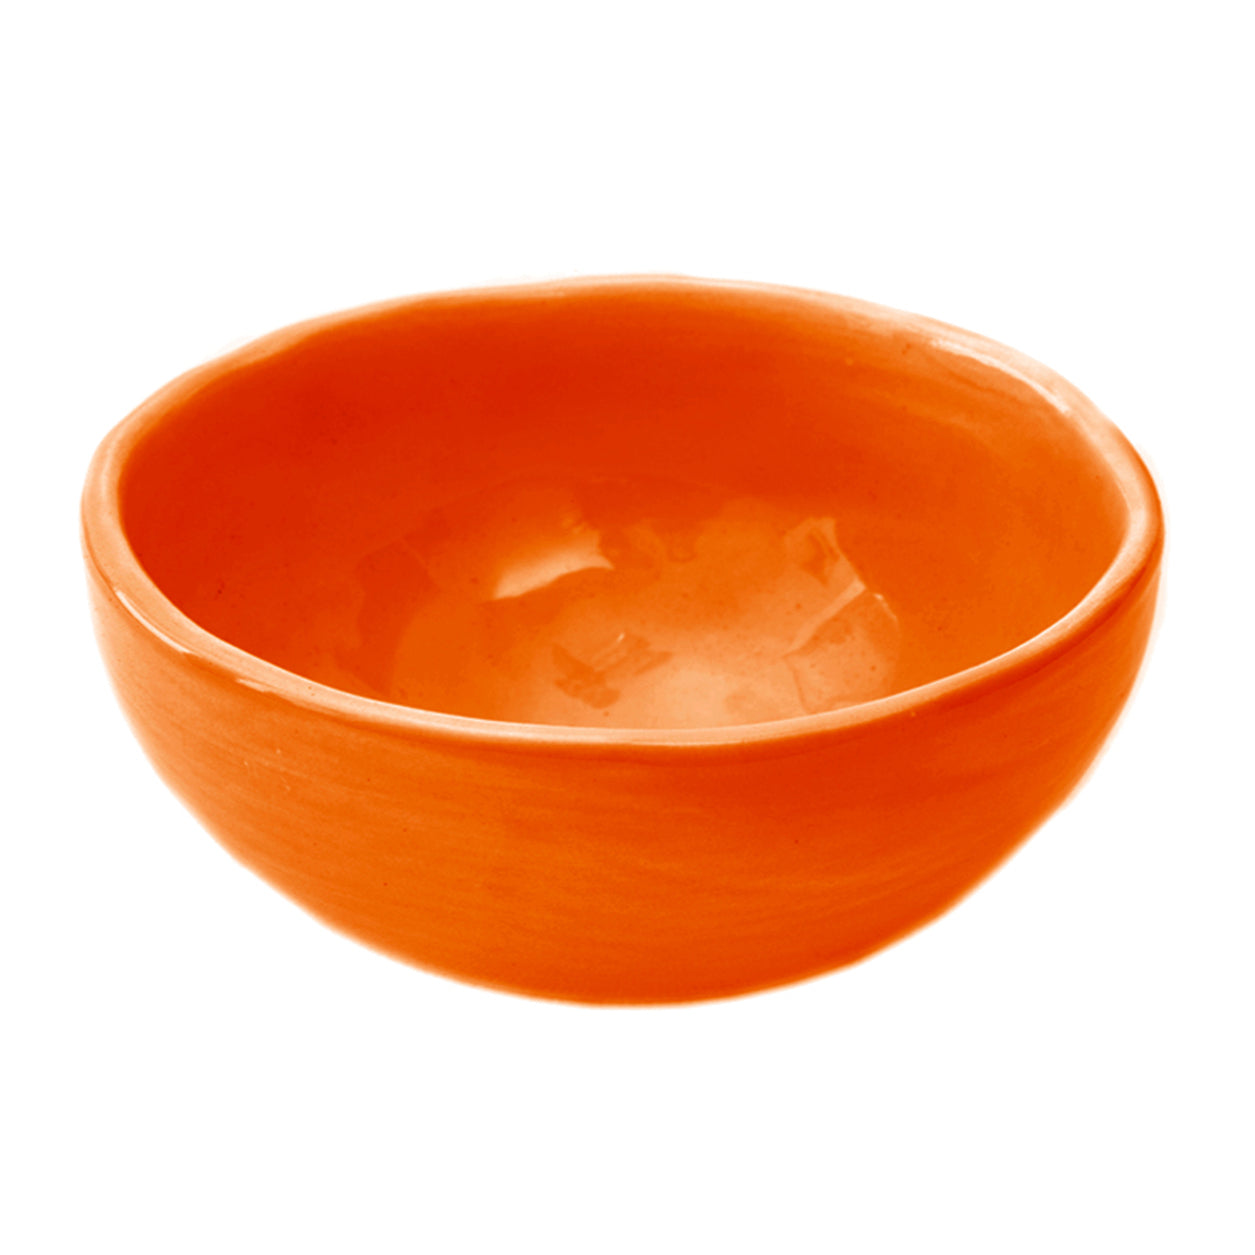 HONEYMOON BOWL MANDARIN